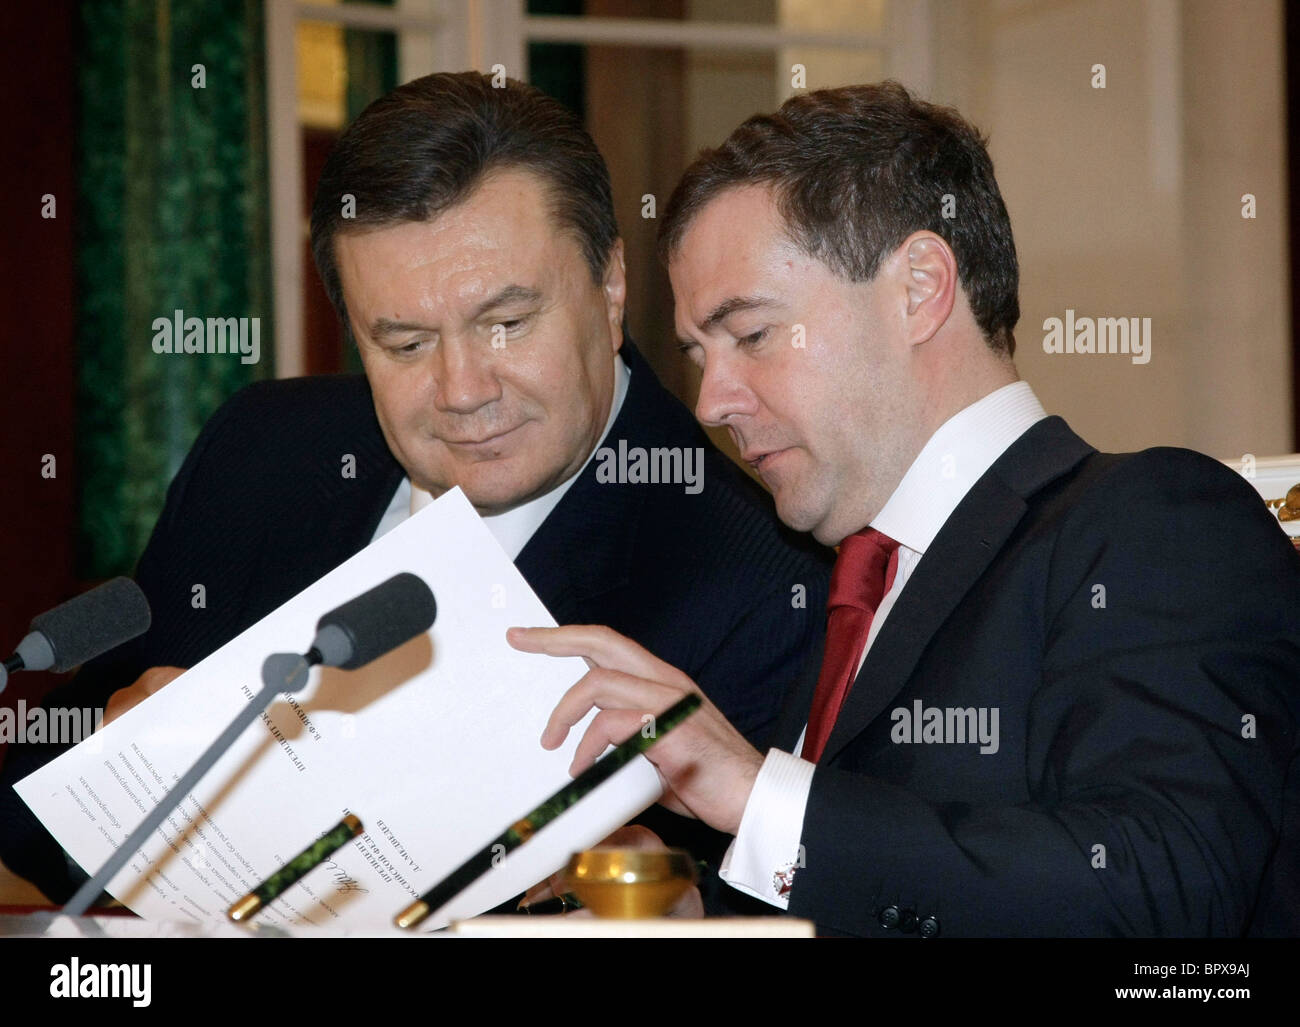 Presidents of Russia and Ukraine meet for talks - Stock Image